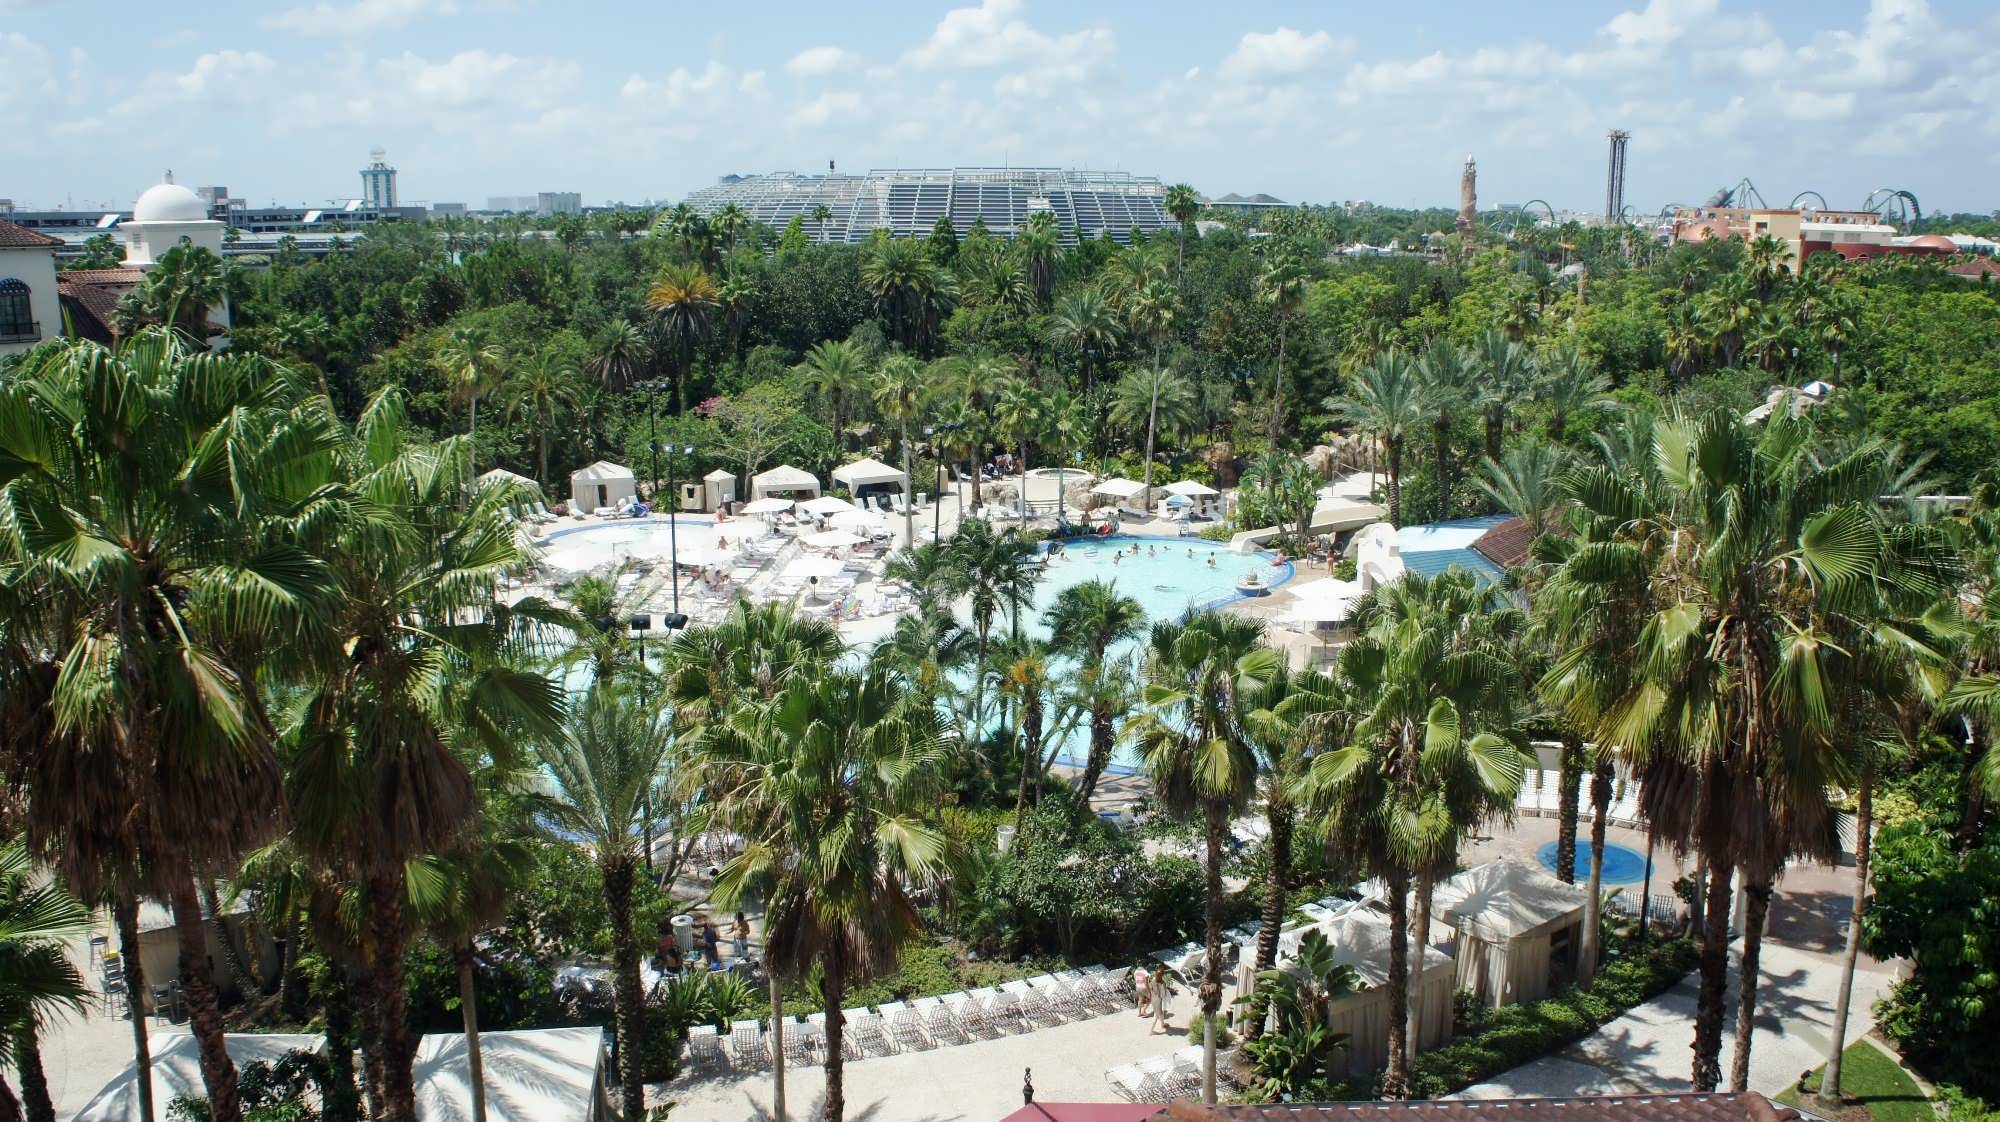 Hard Rock Orlando pool view